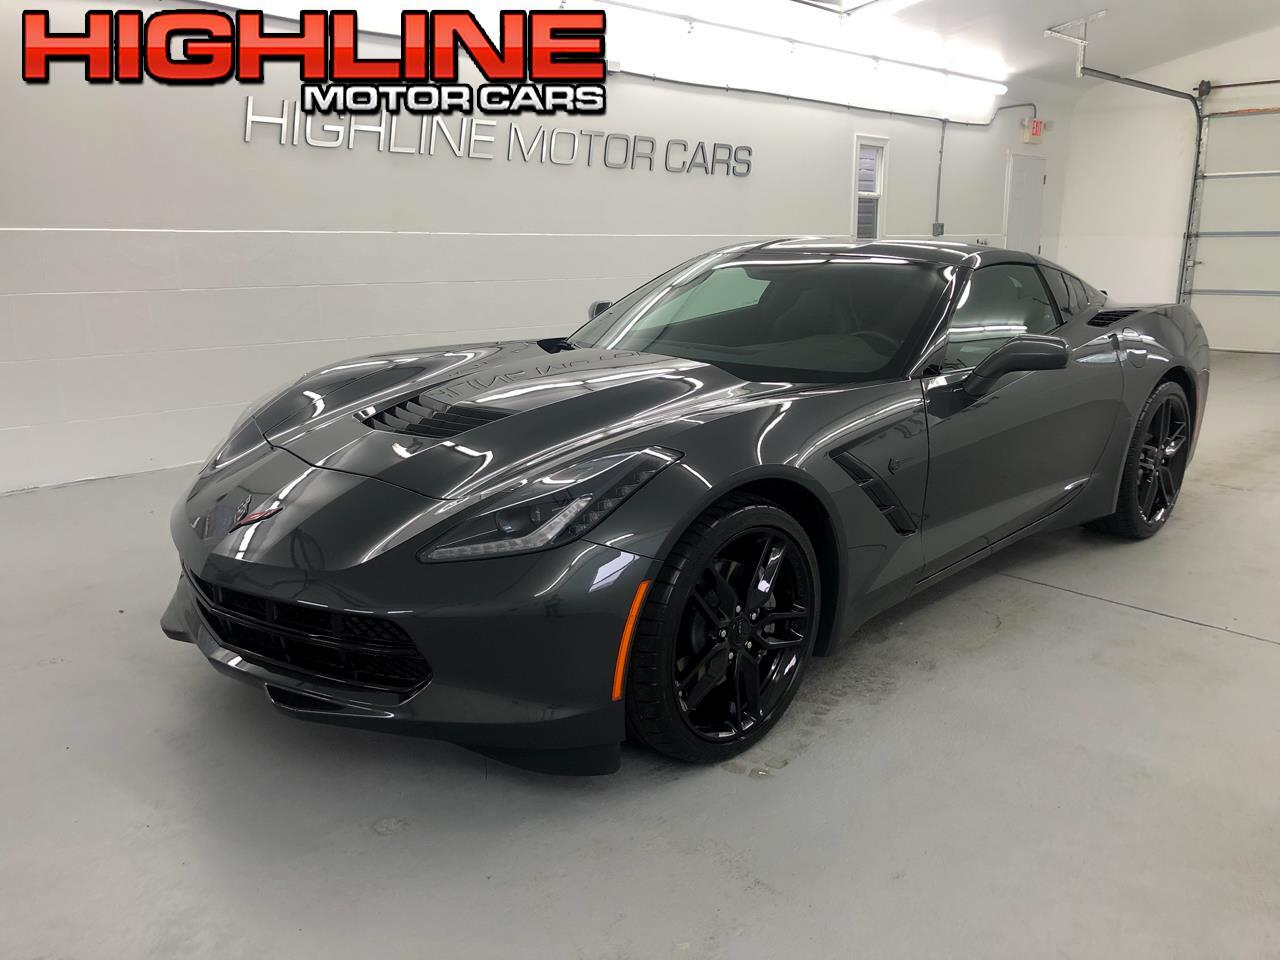 2019 Chevrolet Corvette Stingray 1LT Coupe Automatic